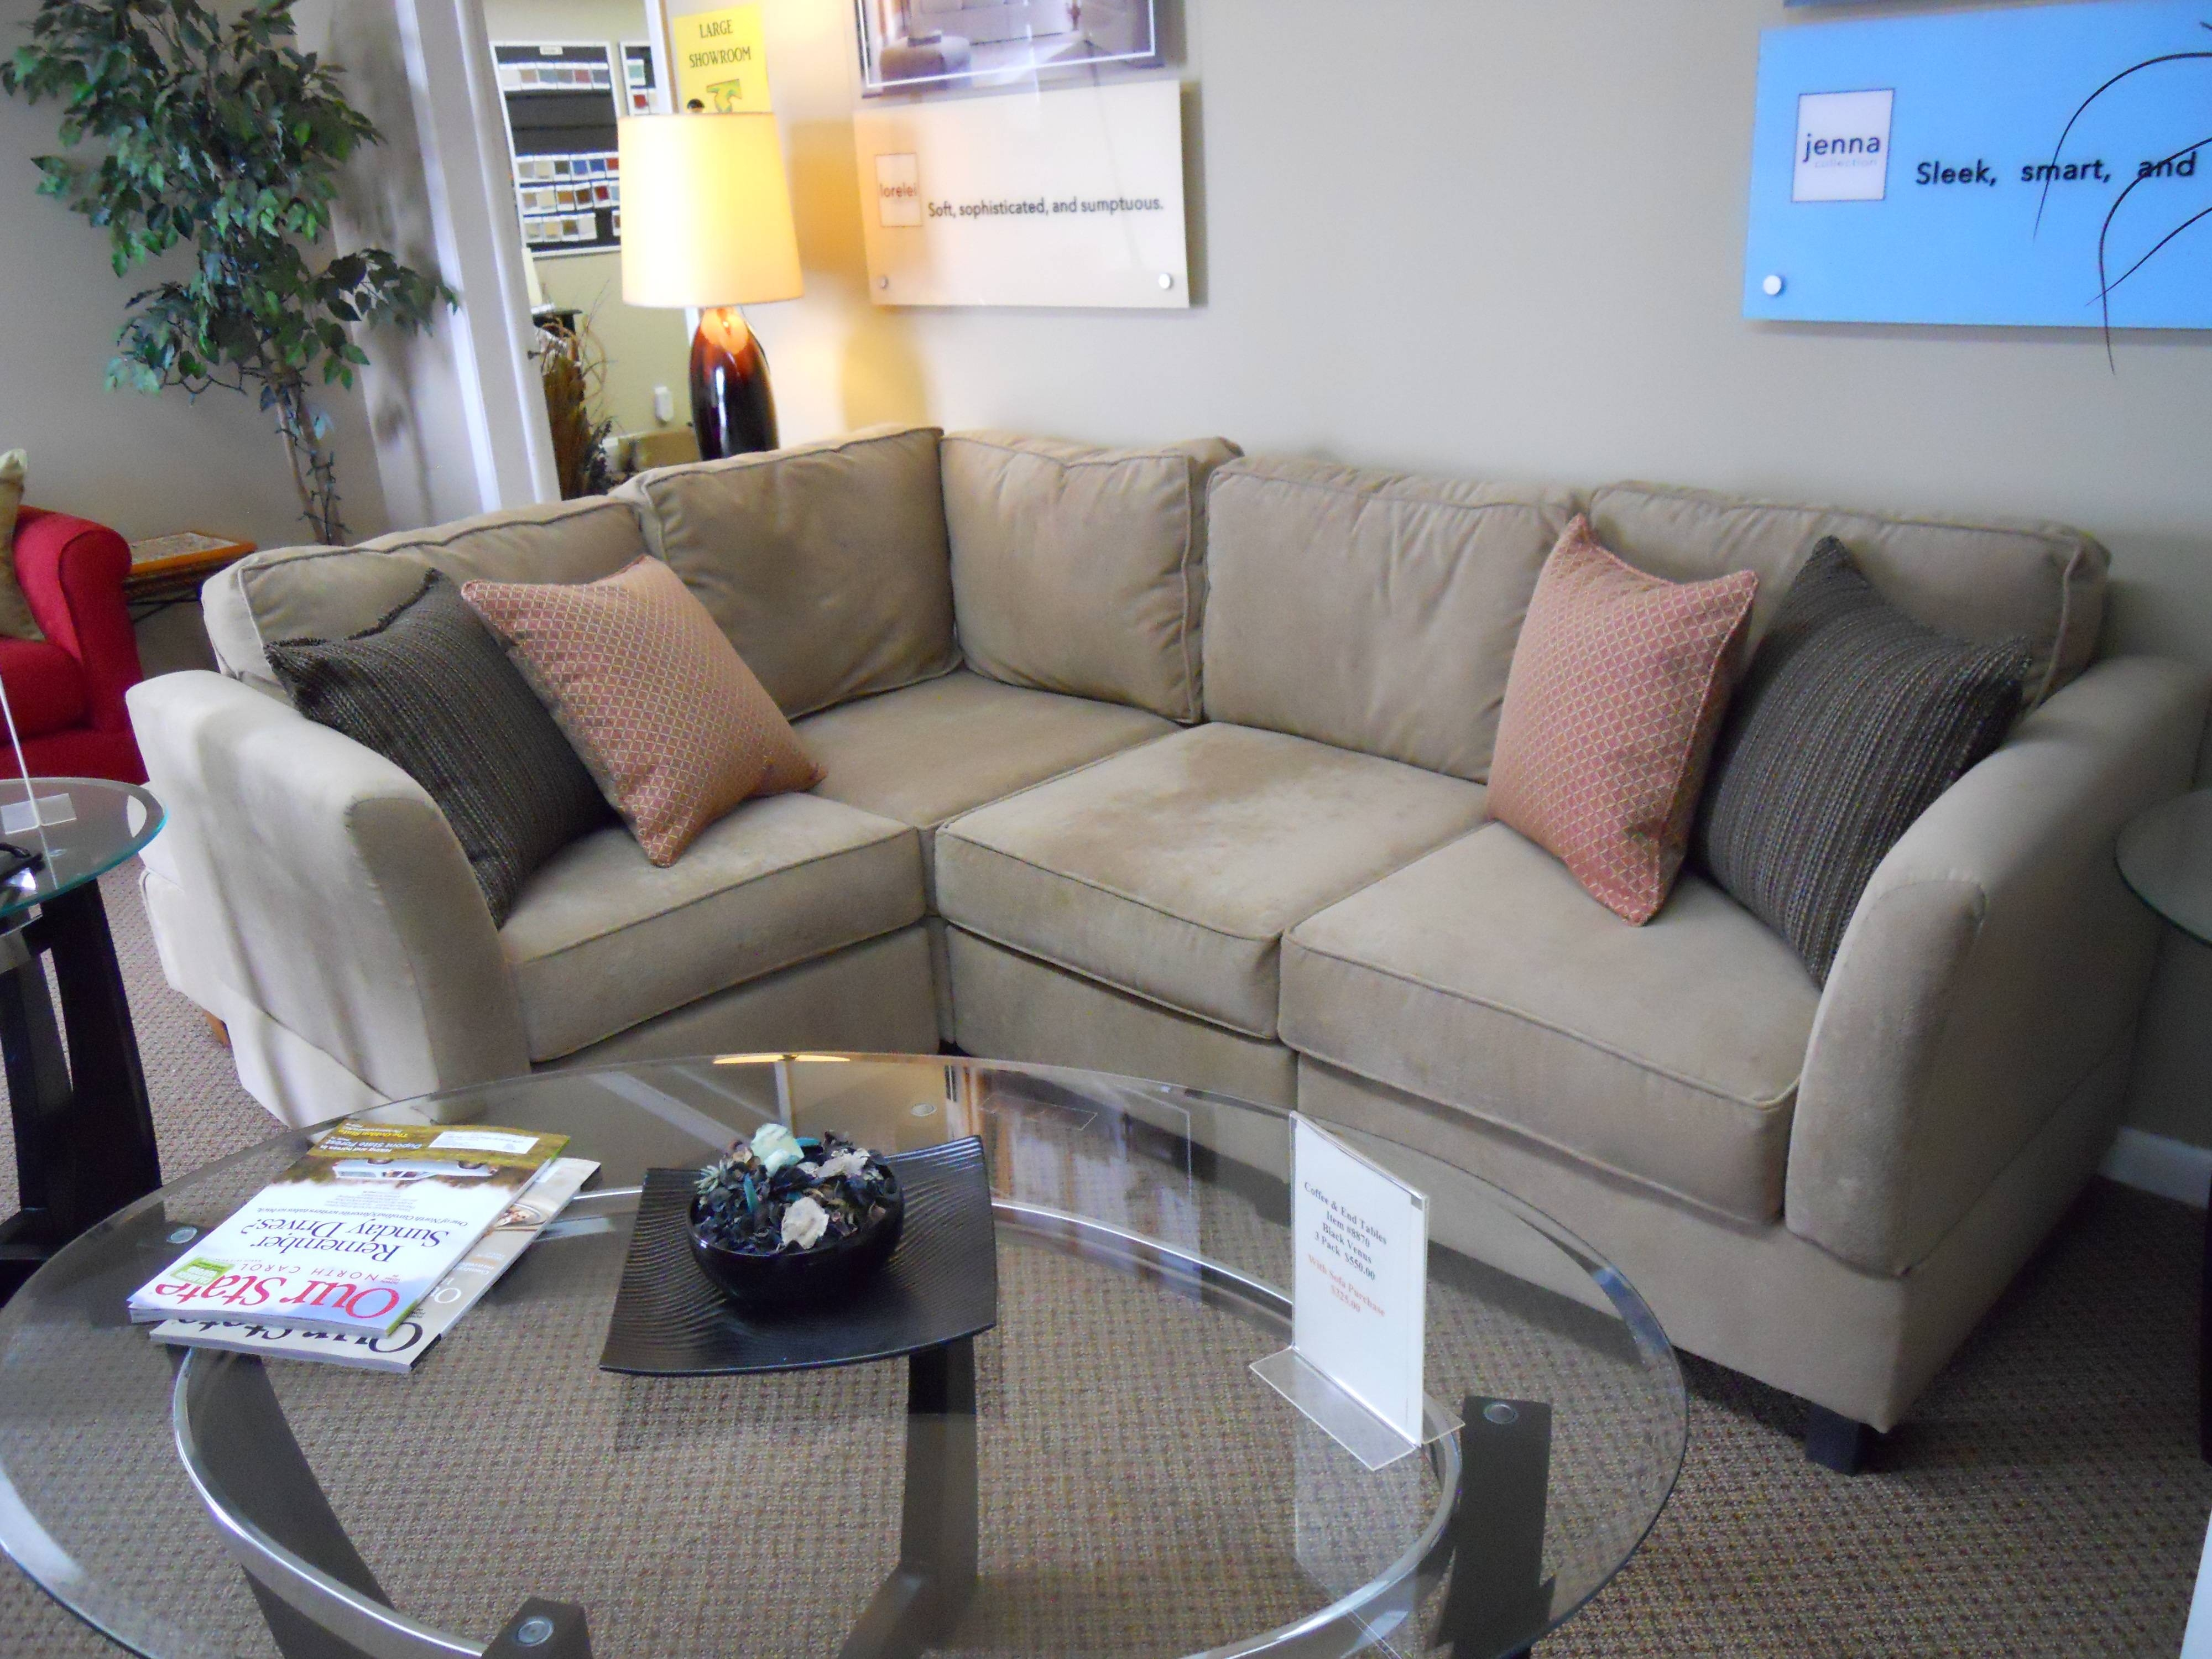 Remarkable Cheap Small Sectional Sofas 74 On Sectional Sofas Within Rochester Sectional Sofas (View 5 of 15)